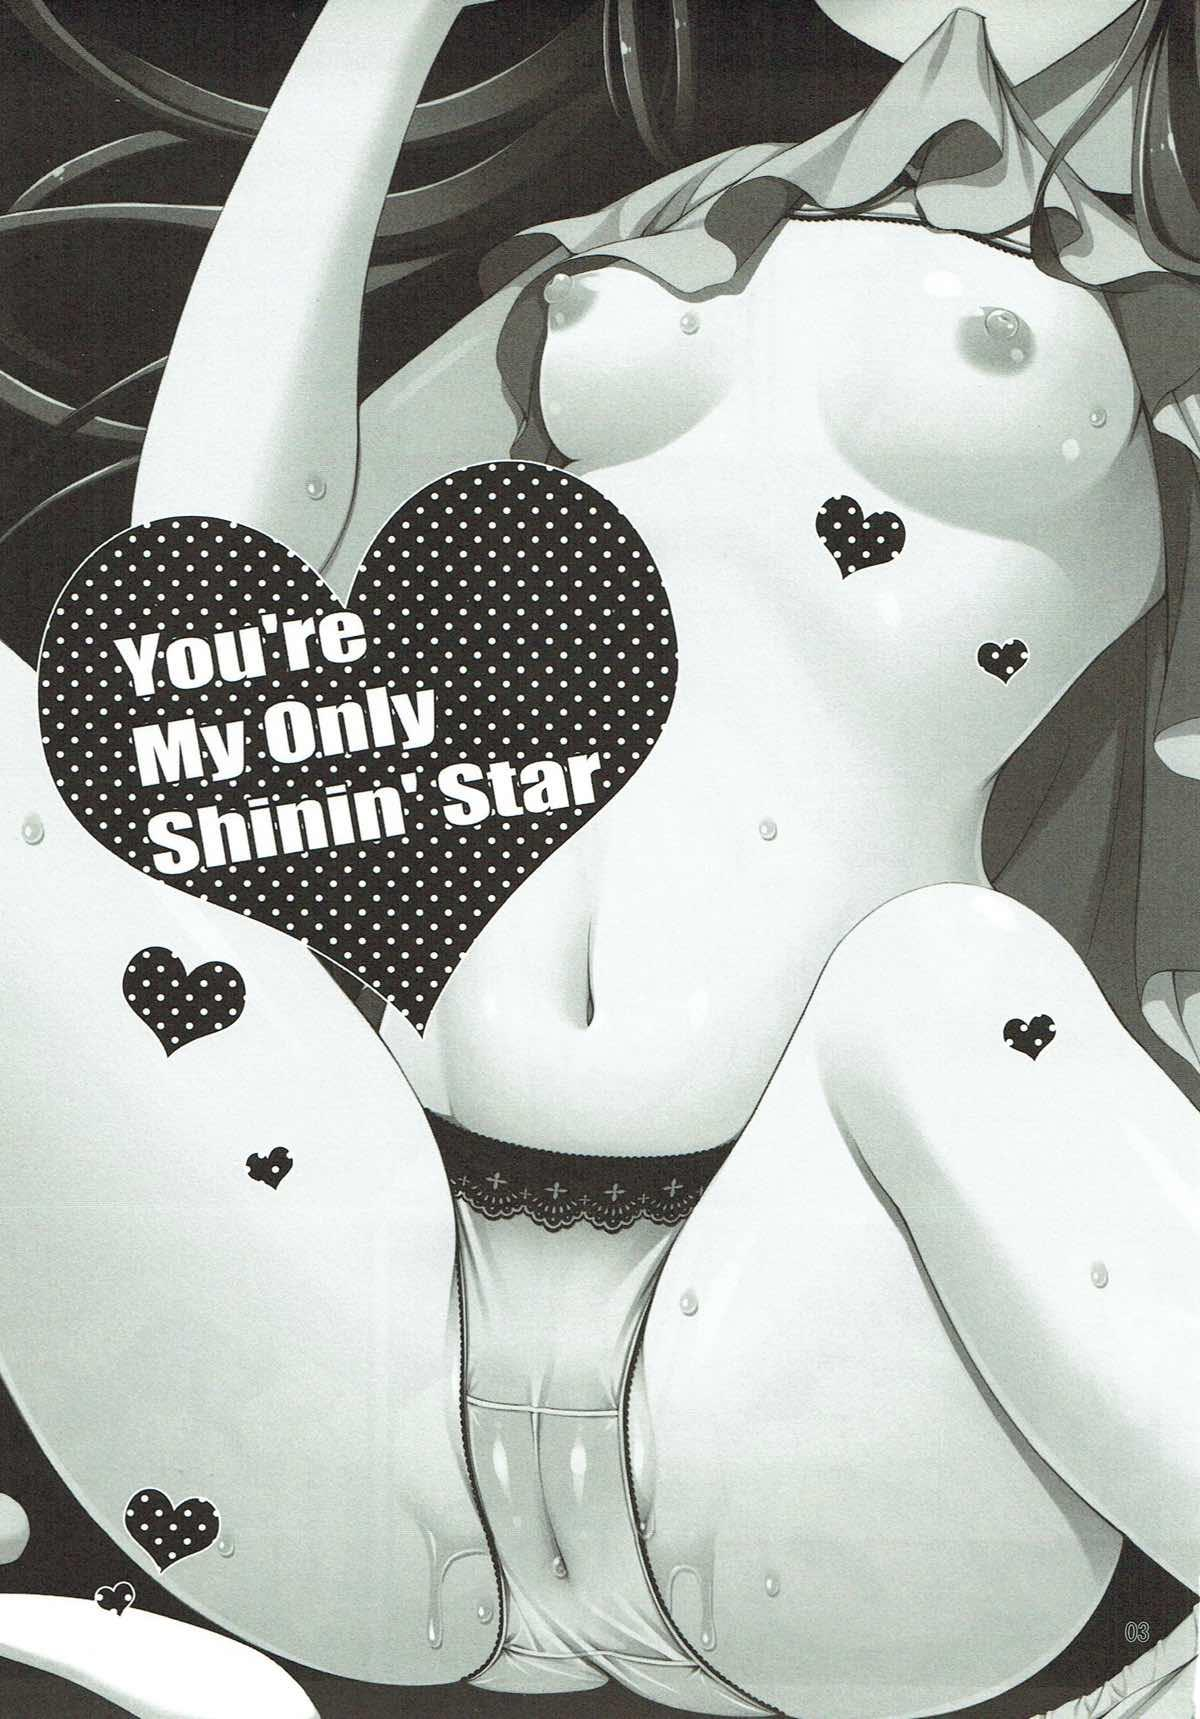 You're My Only Shinin' Star 1